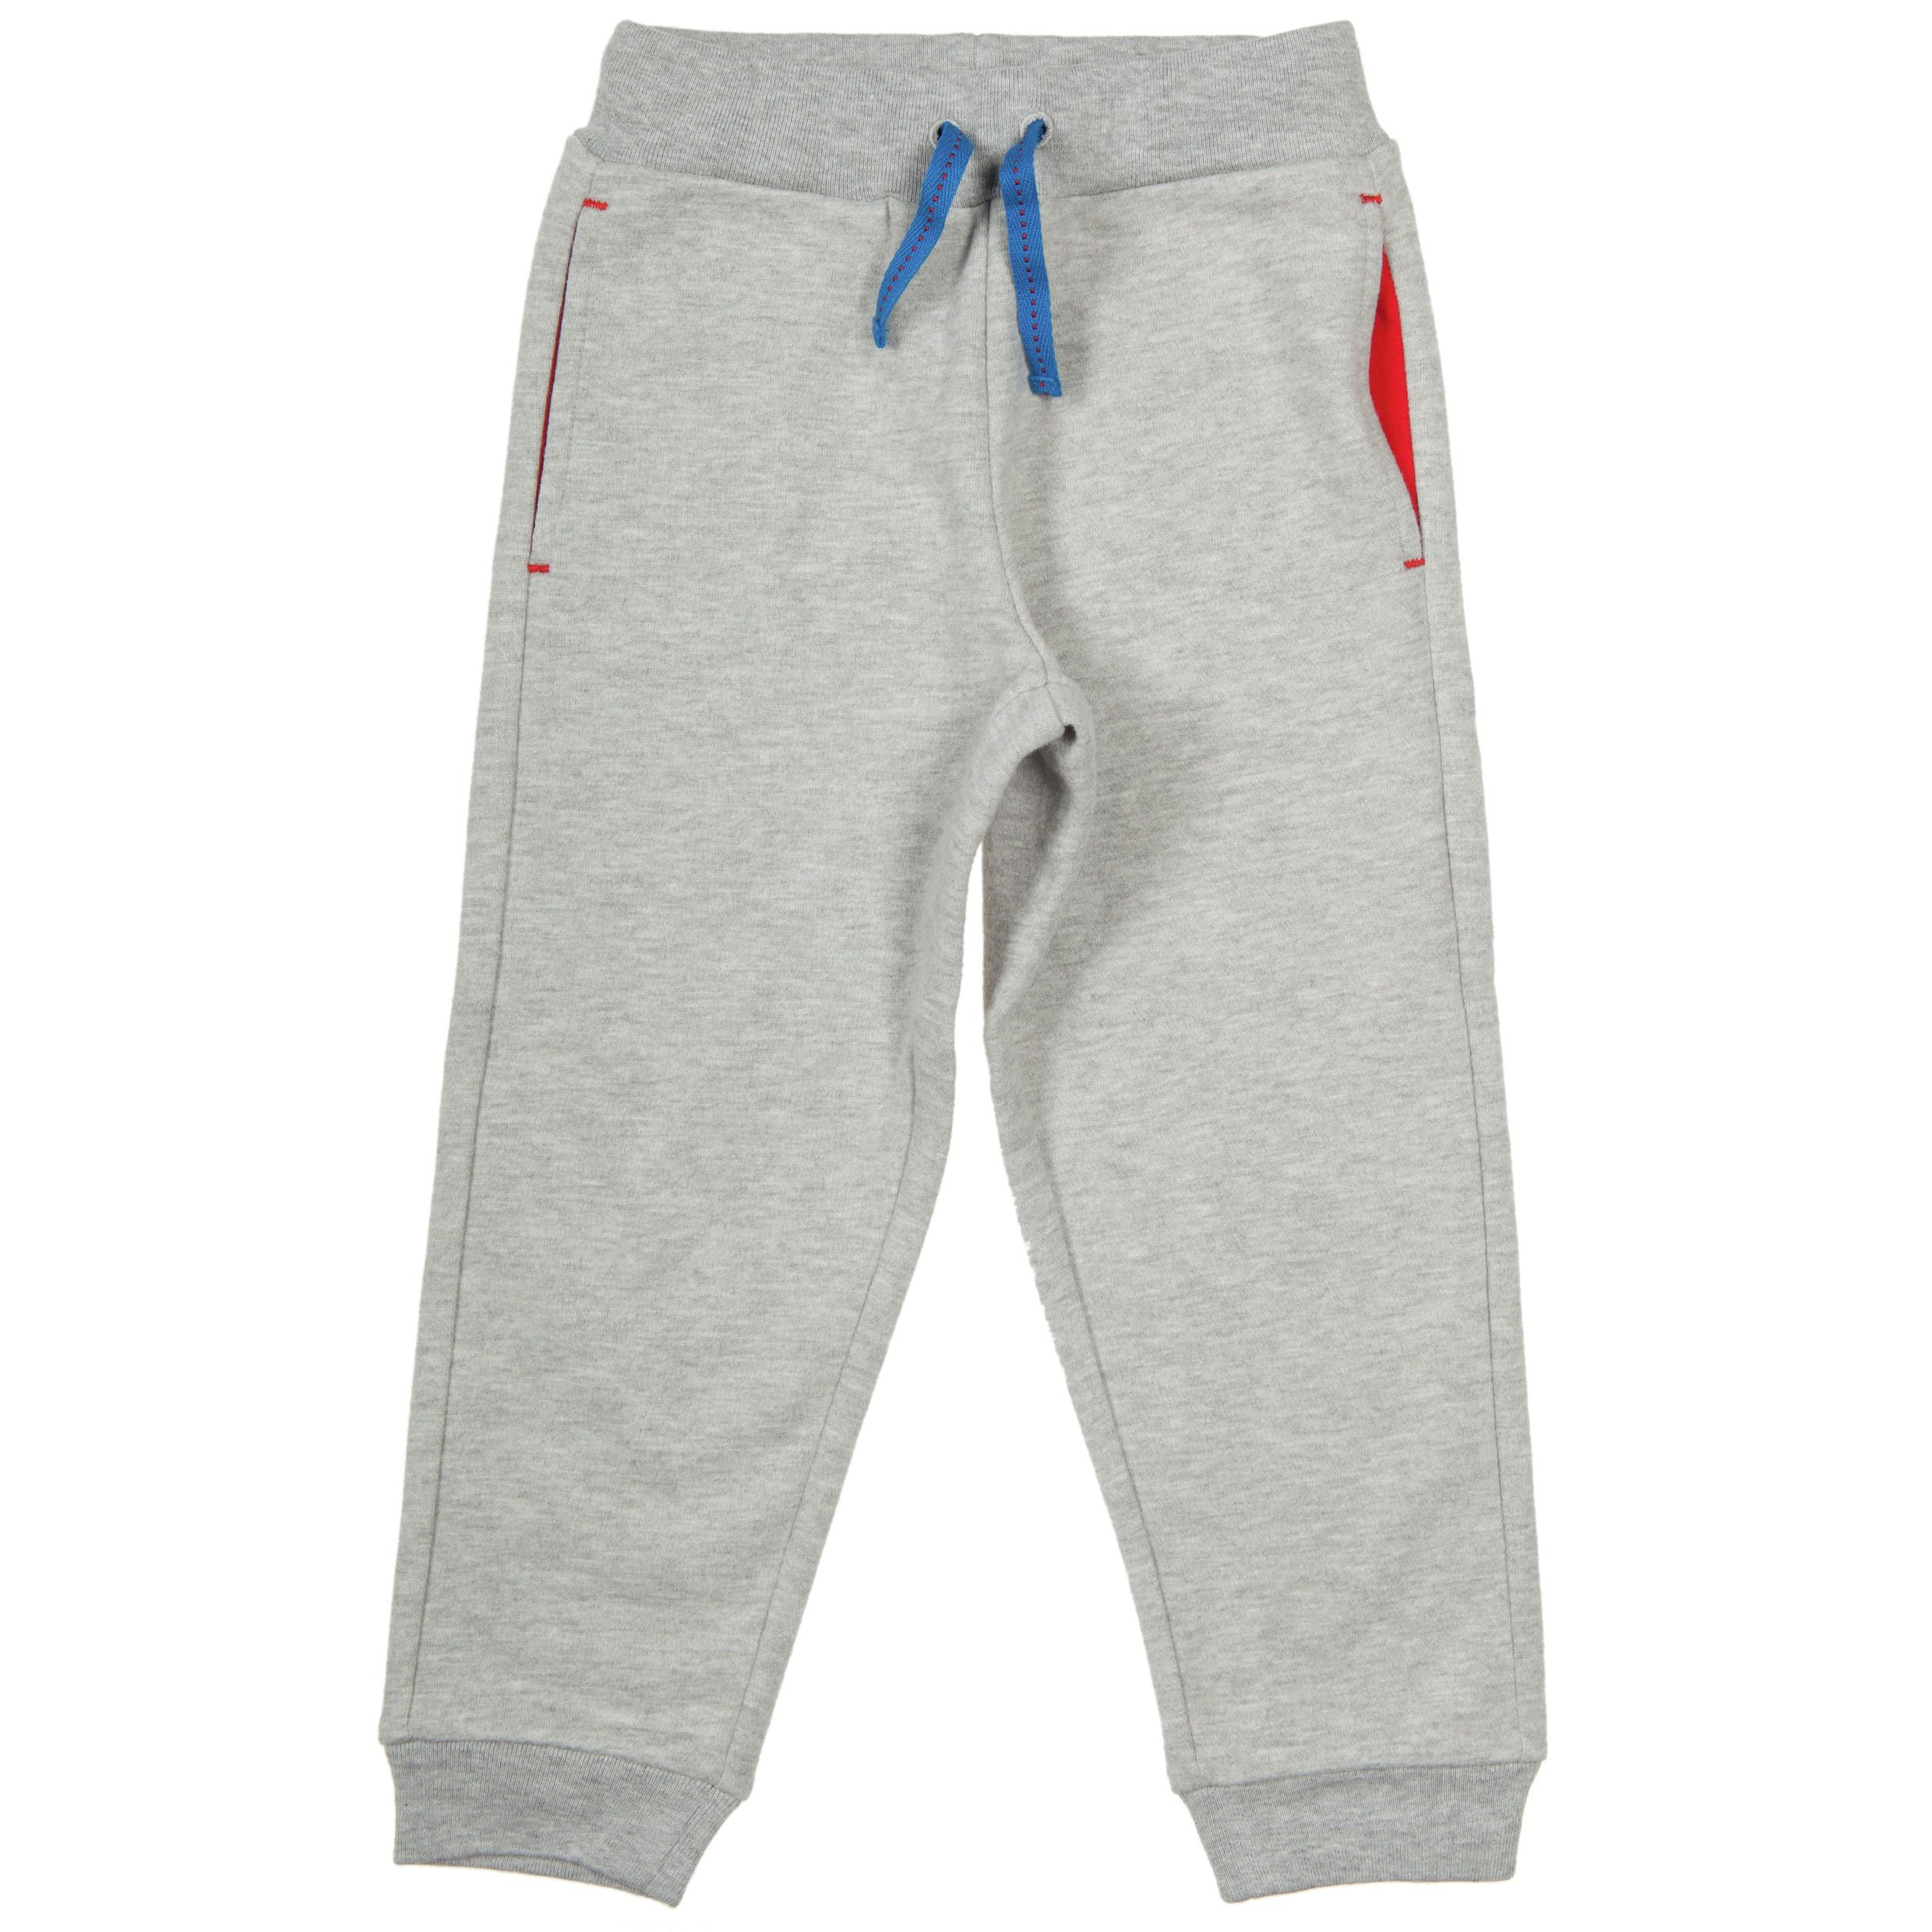 Kids jogging bottoms (2-6 years)